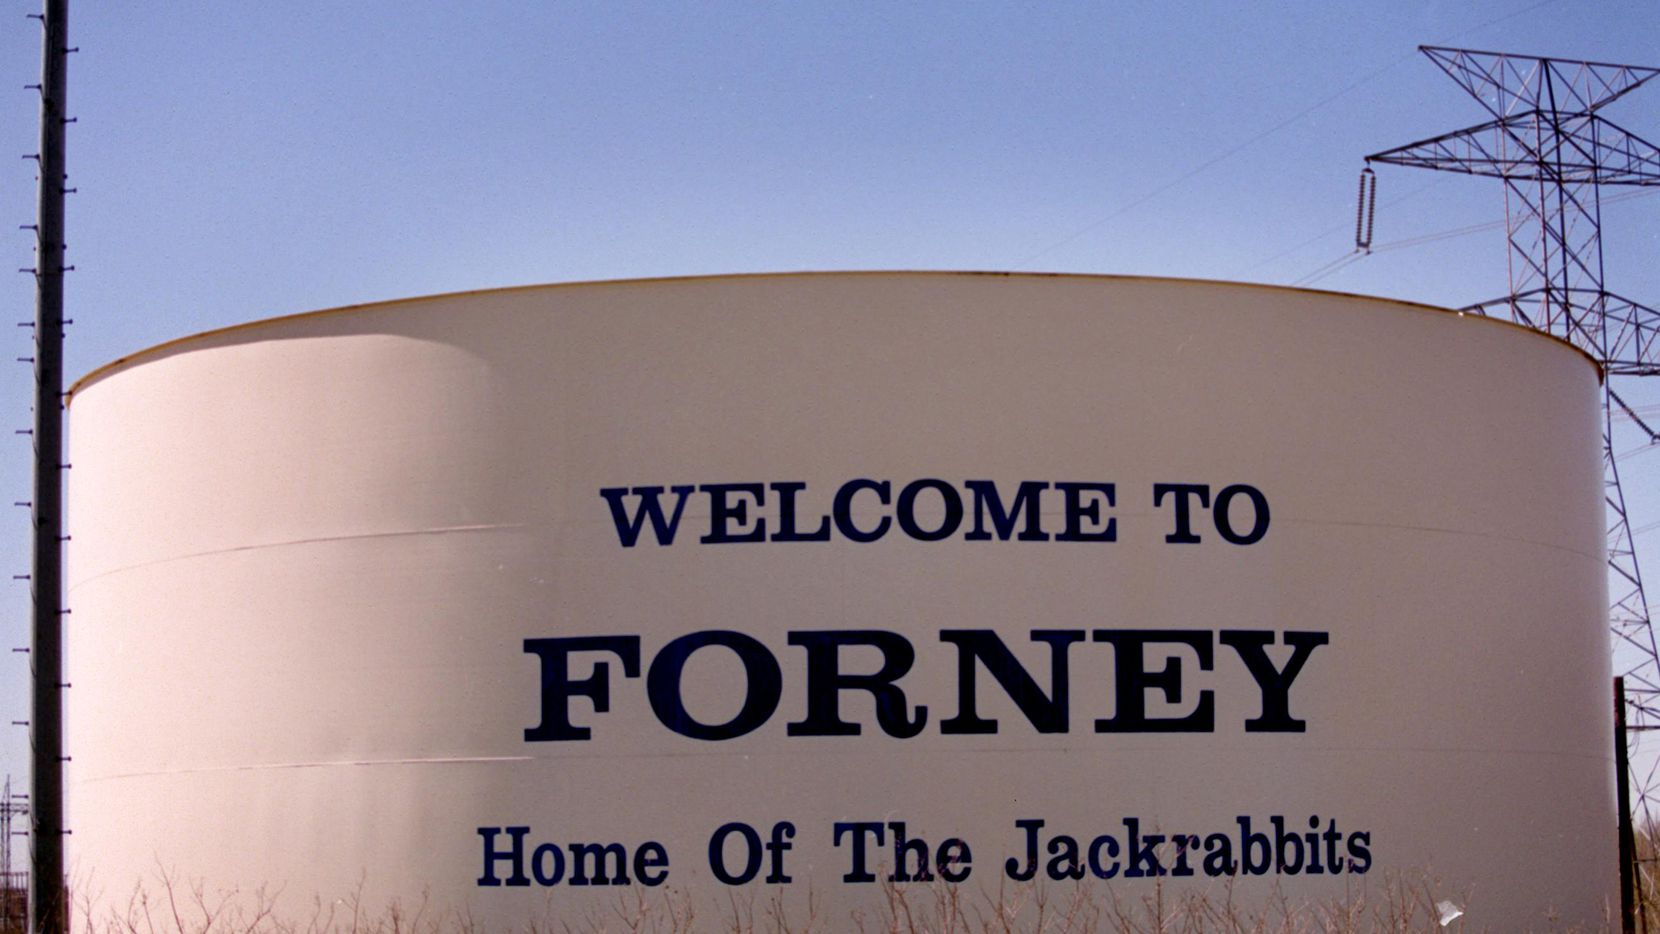 Developer Wynne/Jackson is building a $300 million residential community in Forney.